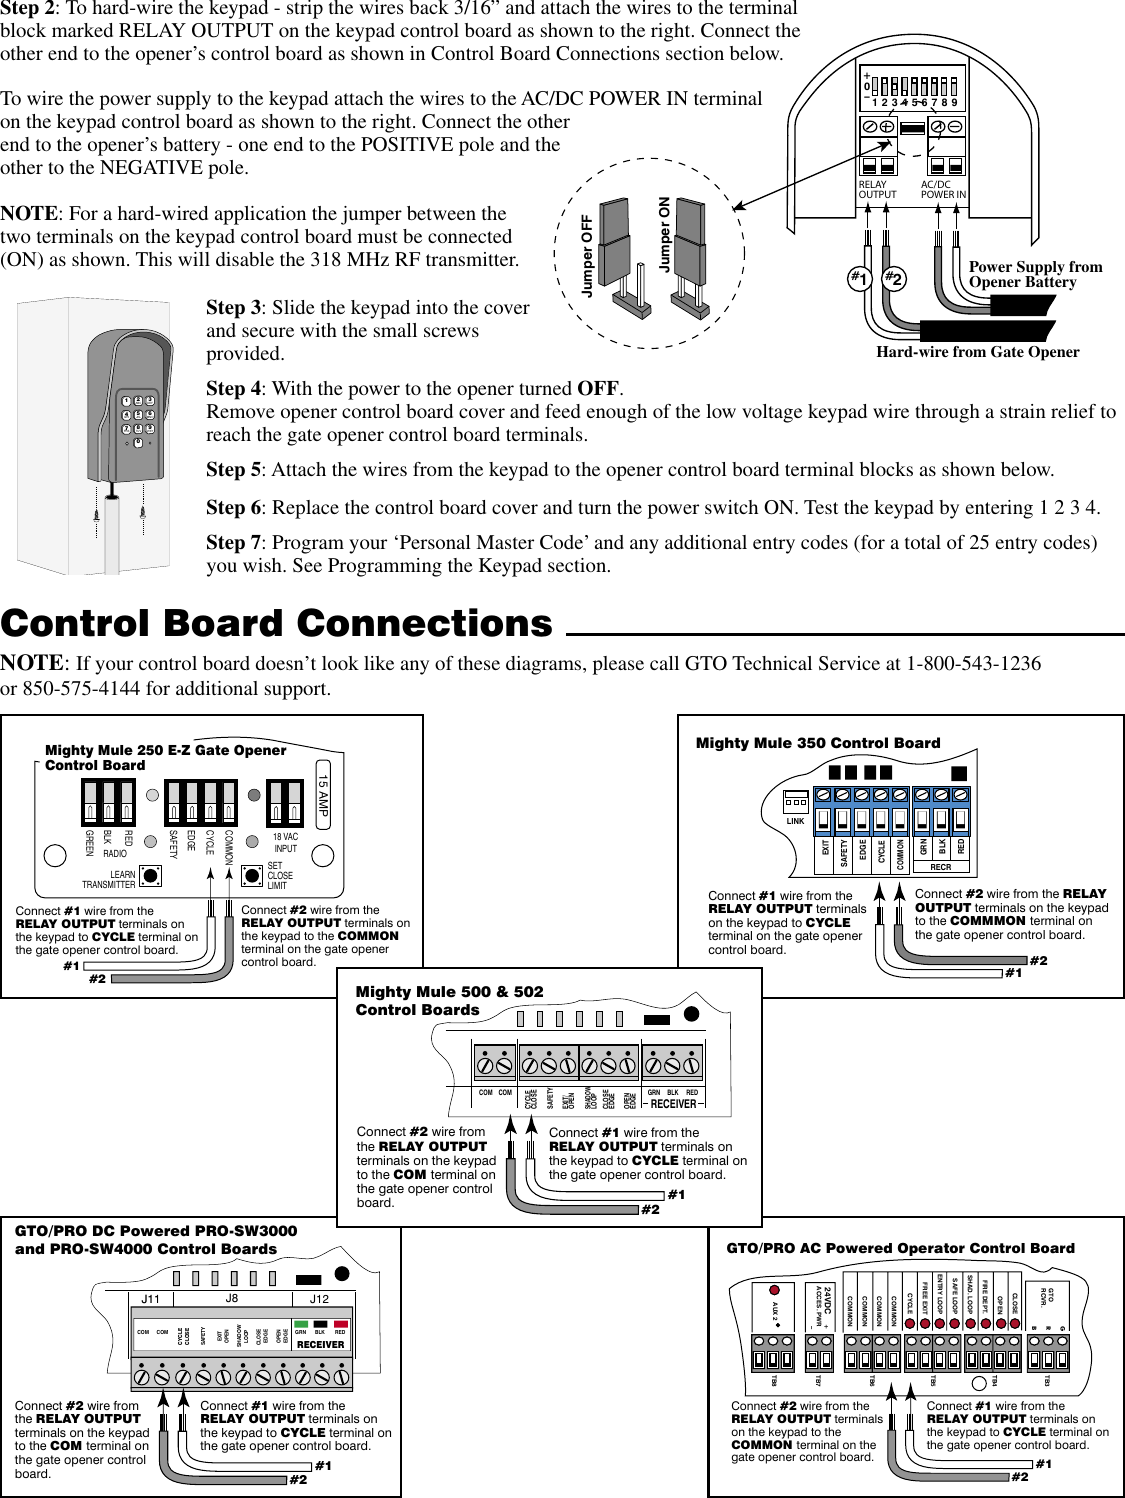 New Keypad Instrs 6 21 05 Gto Wireless Wire Gate Opener Manual Wiring Diagram Page 3 Of 5